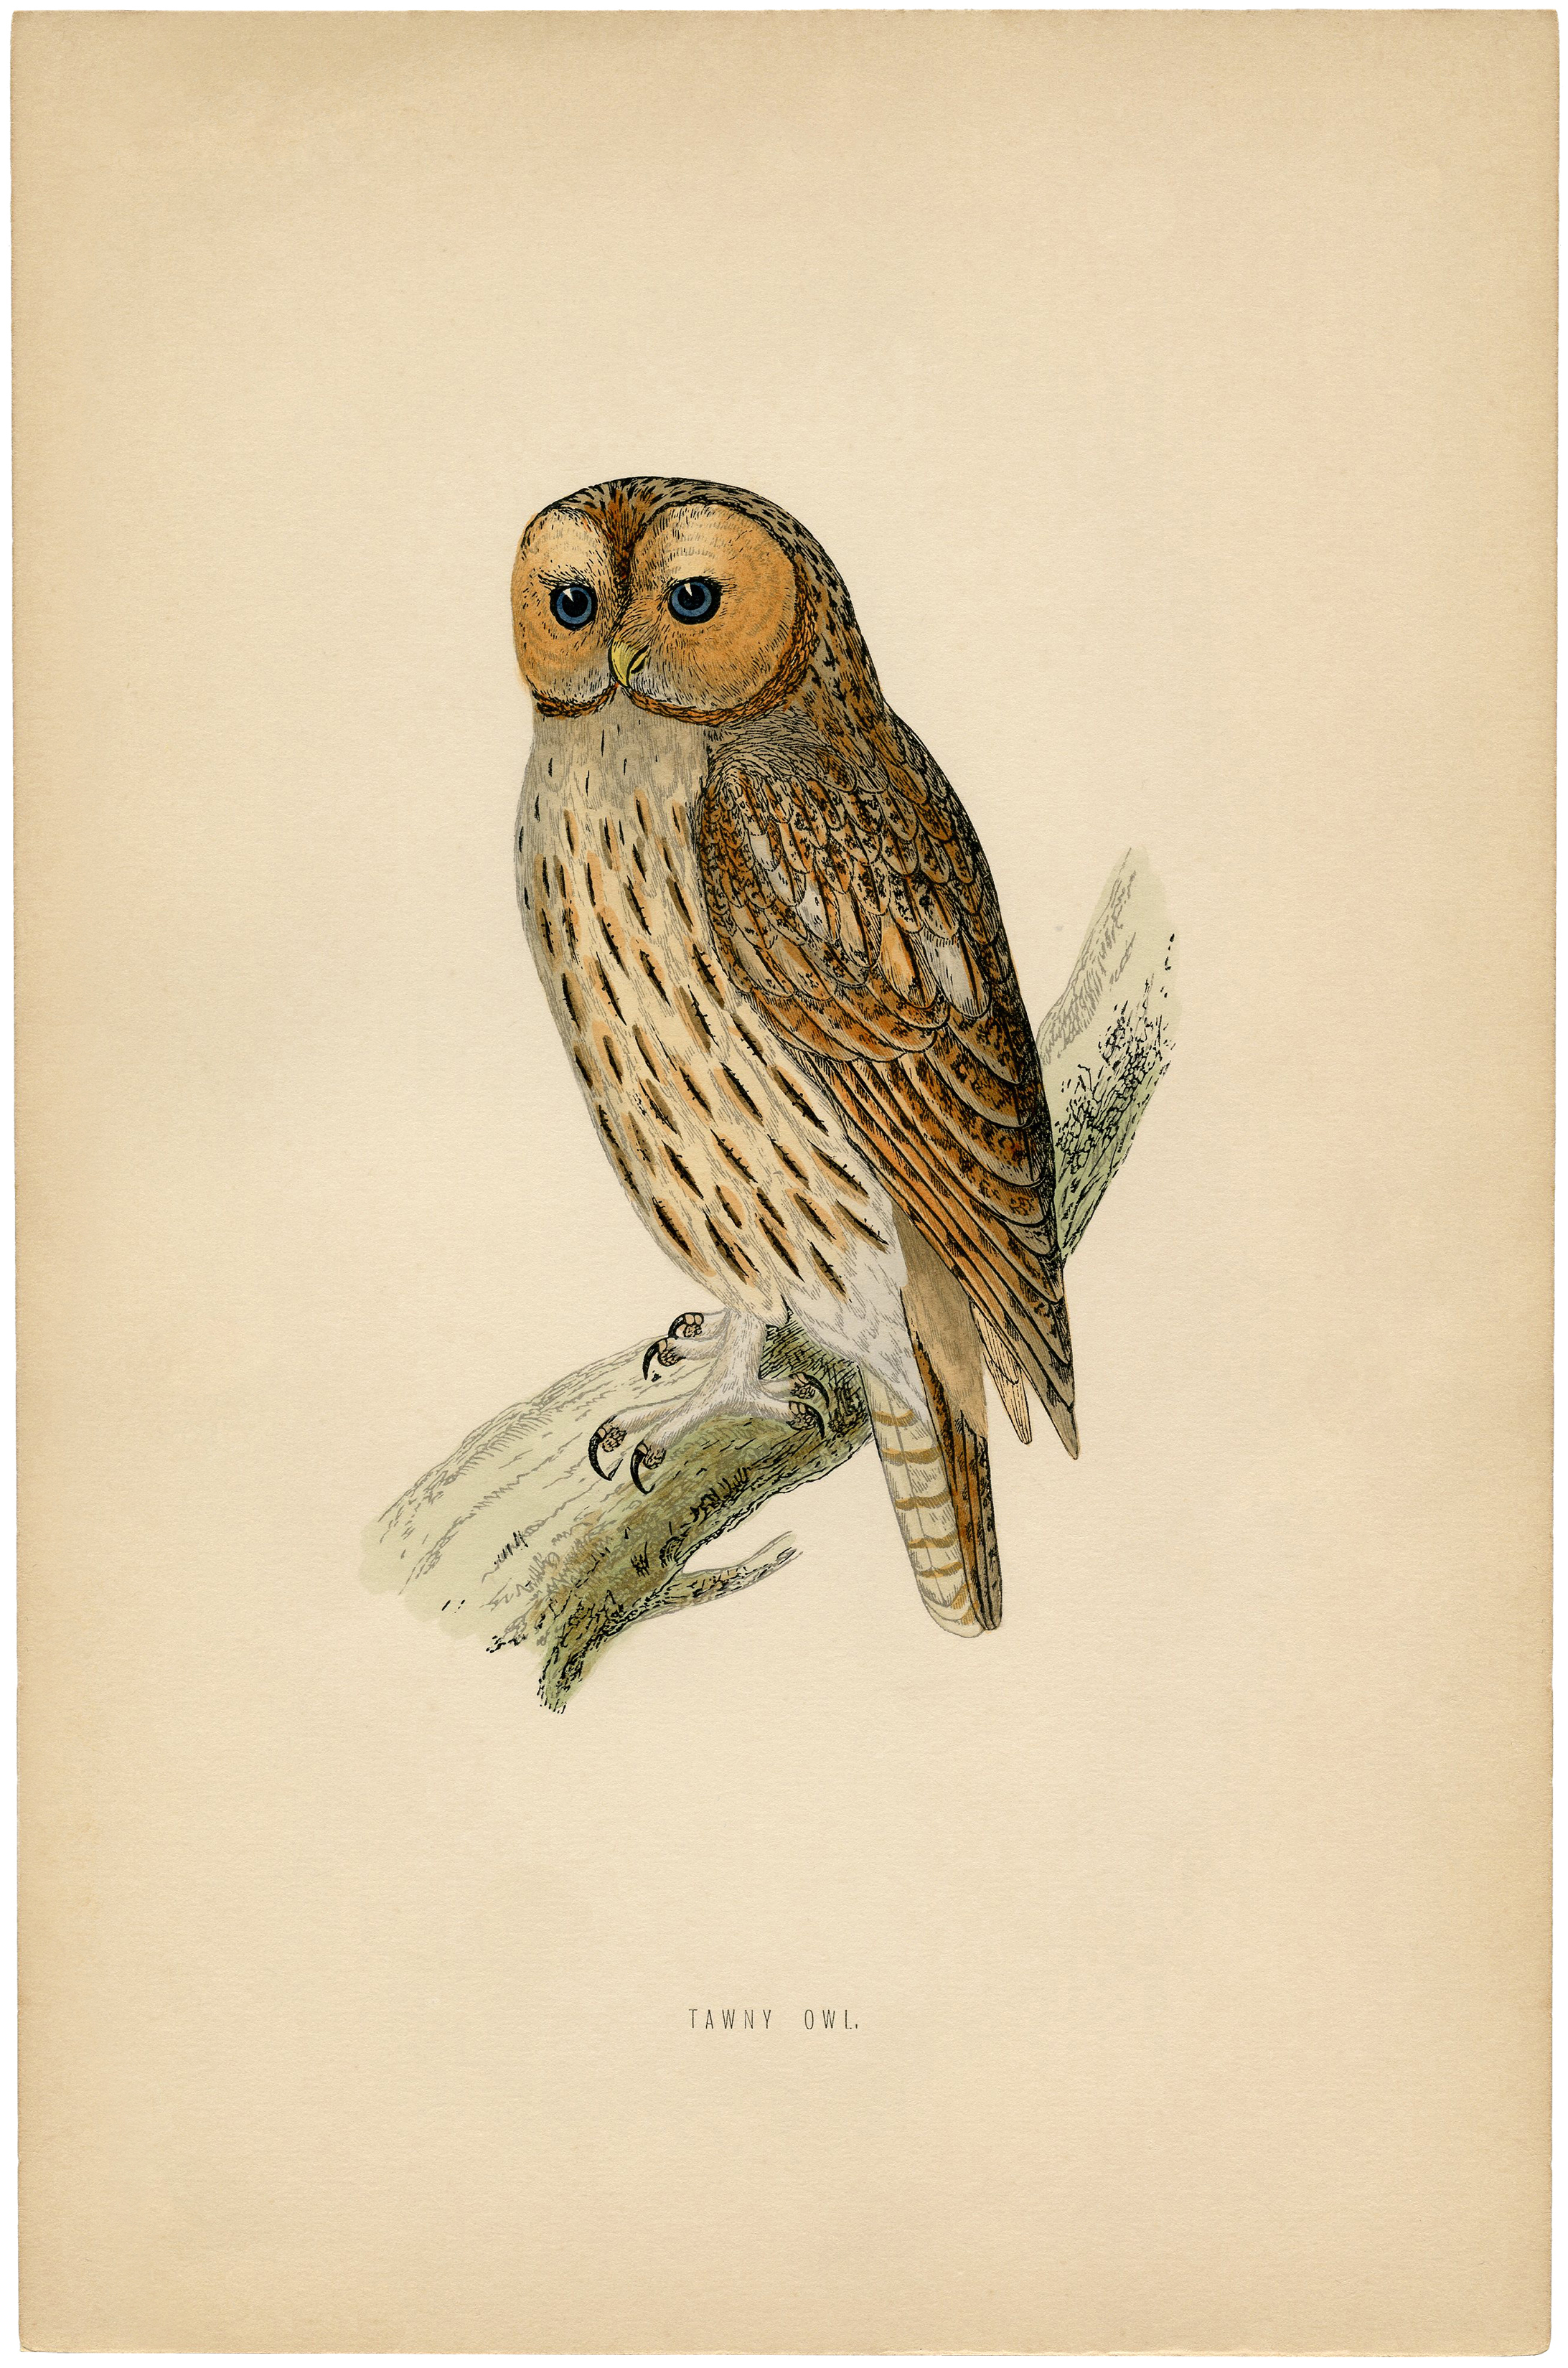 Vintage Printable Owl Images   The Graphics Fairy 2185x3300